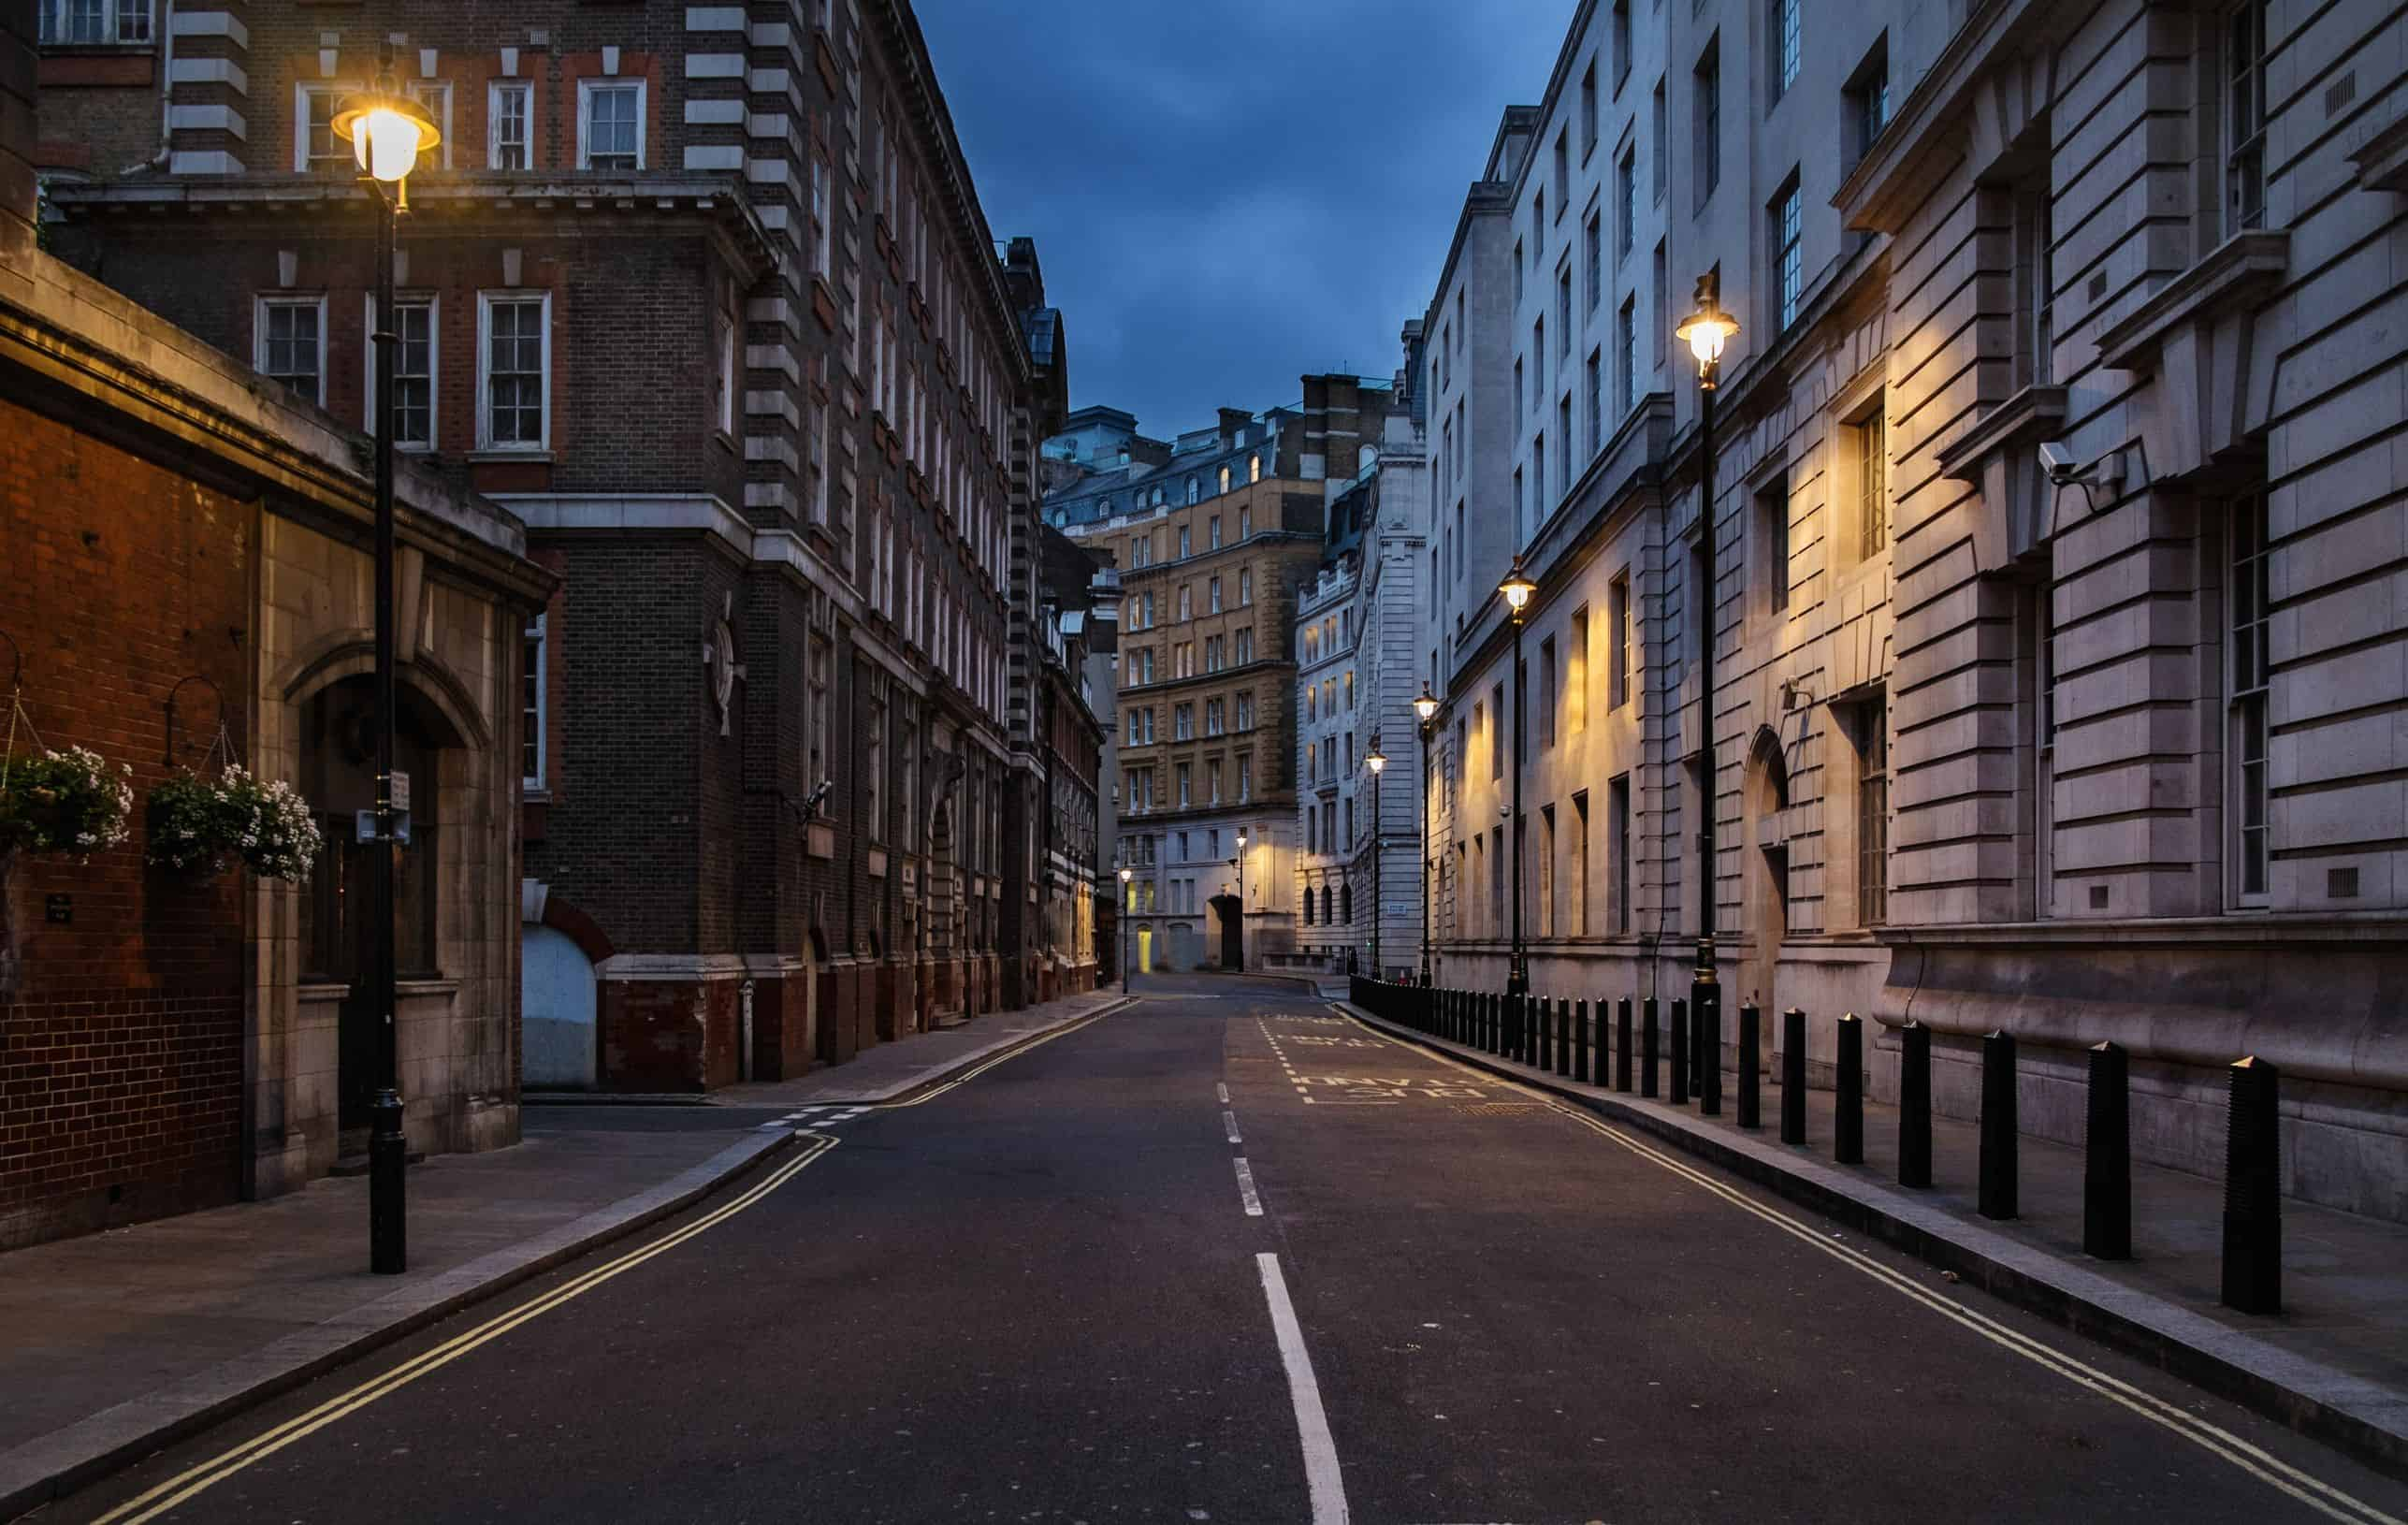 32976093 - empty street of london at night